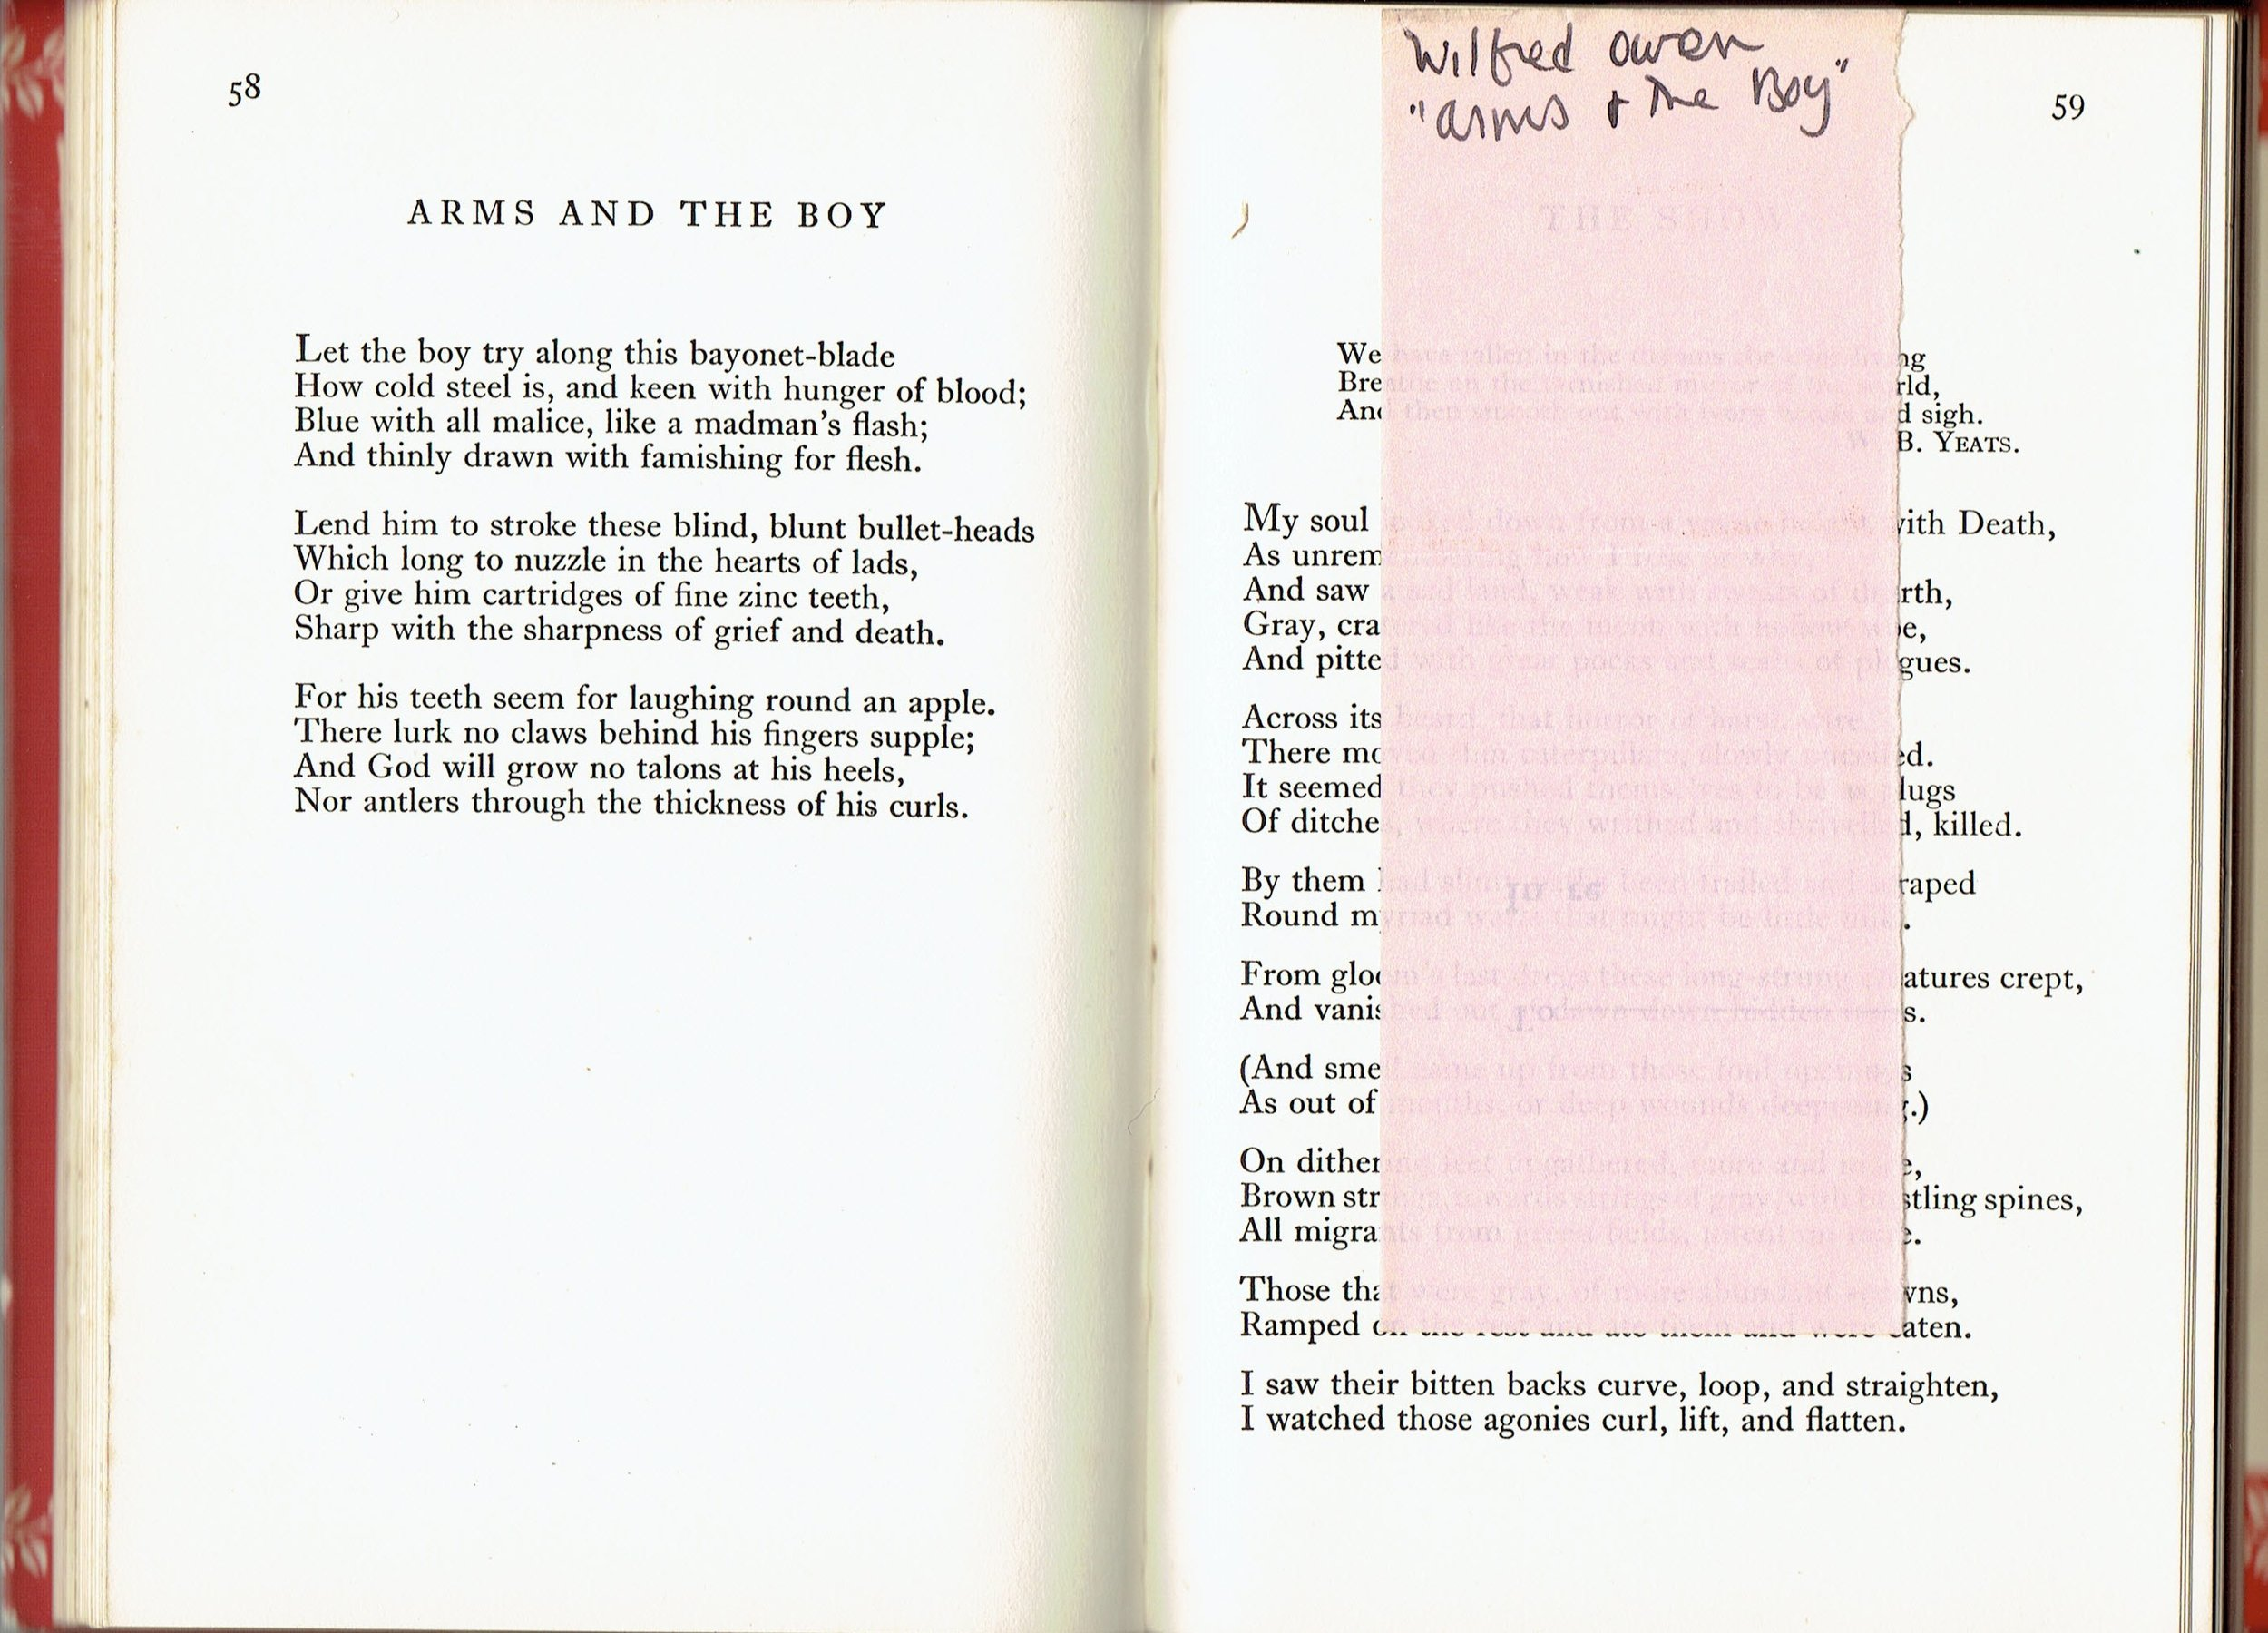 Poems_of_Wilfred_Own_Monteith_Arms_page.jpg